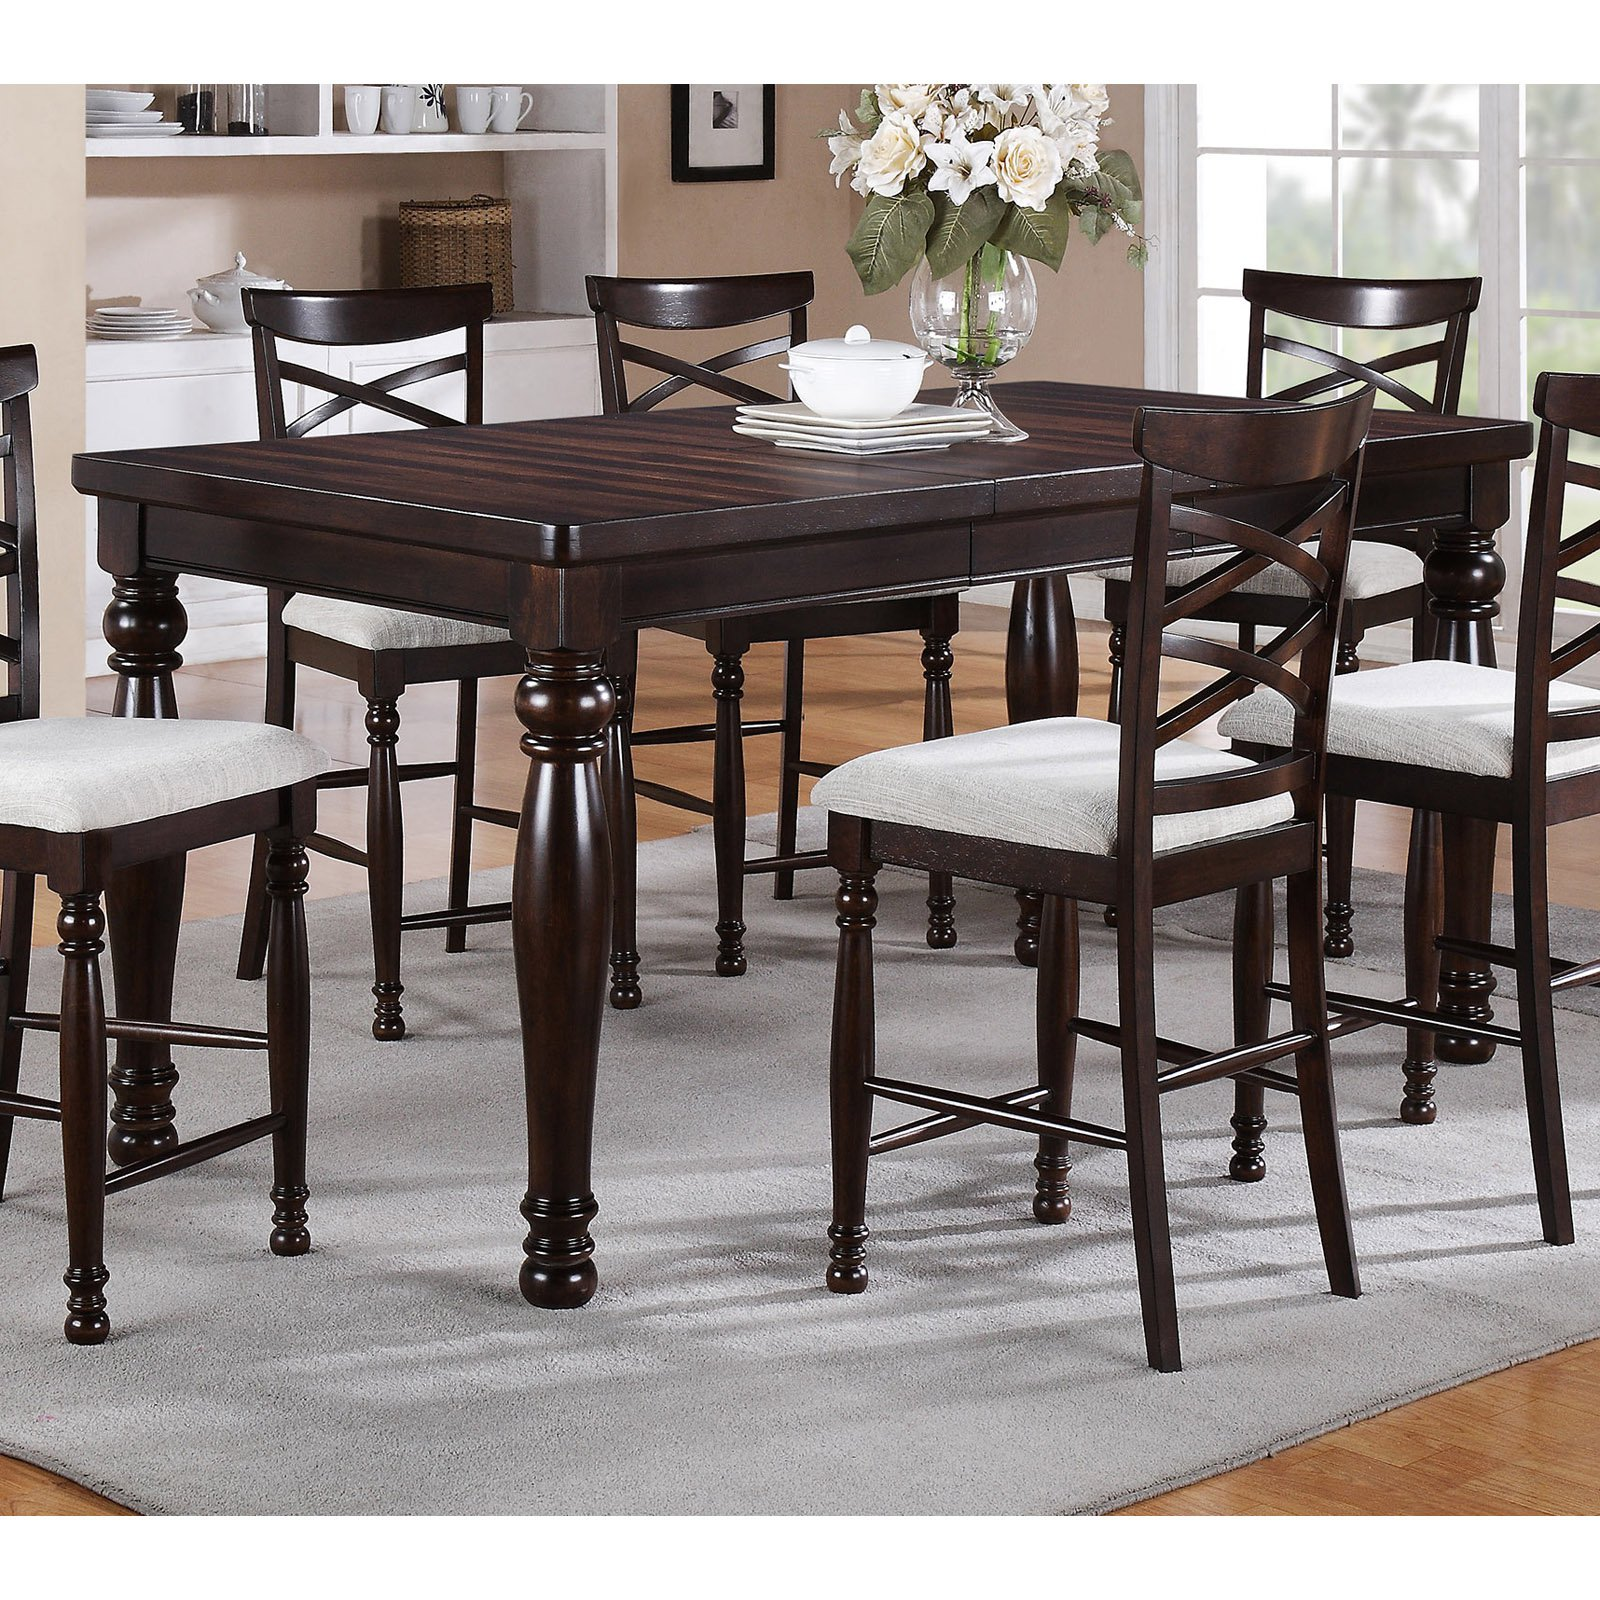 Counter Height Dining Table with Butterfly Leaf winners only hamilton park counter height dining table with 18 UKDDGRO